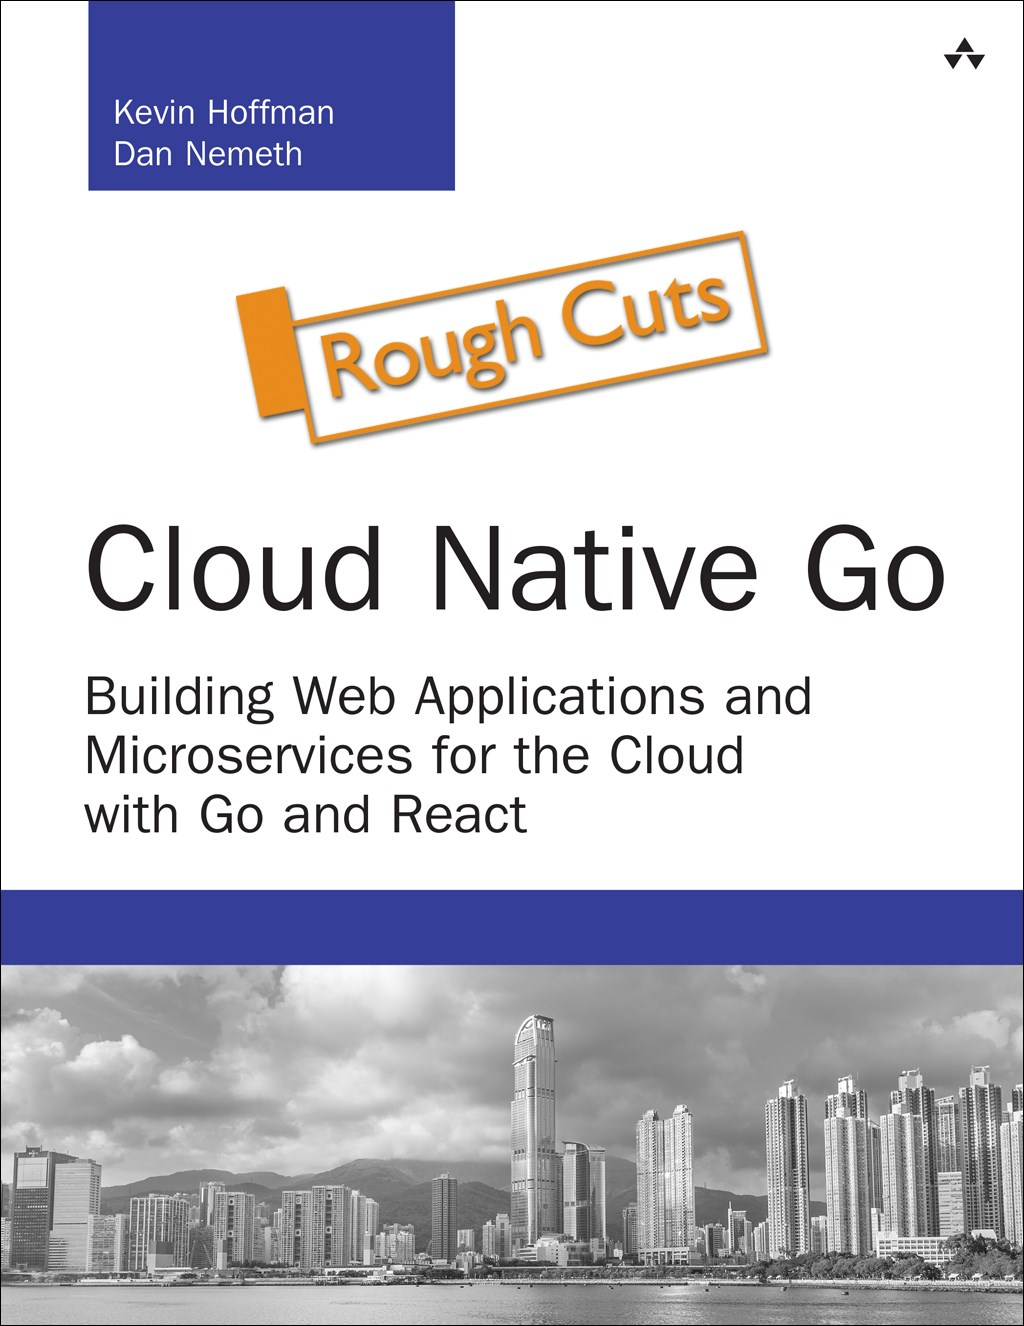 Cloud Native Go: Building Web Applications and Microservices for the Cloud with Go and React, Rough Cuts